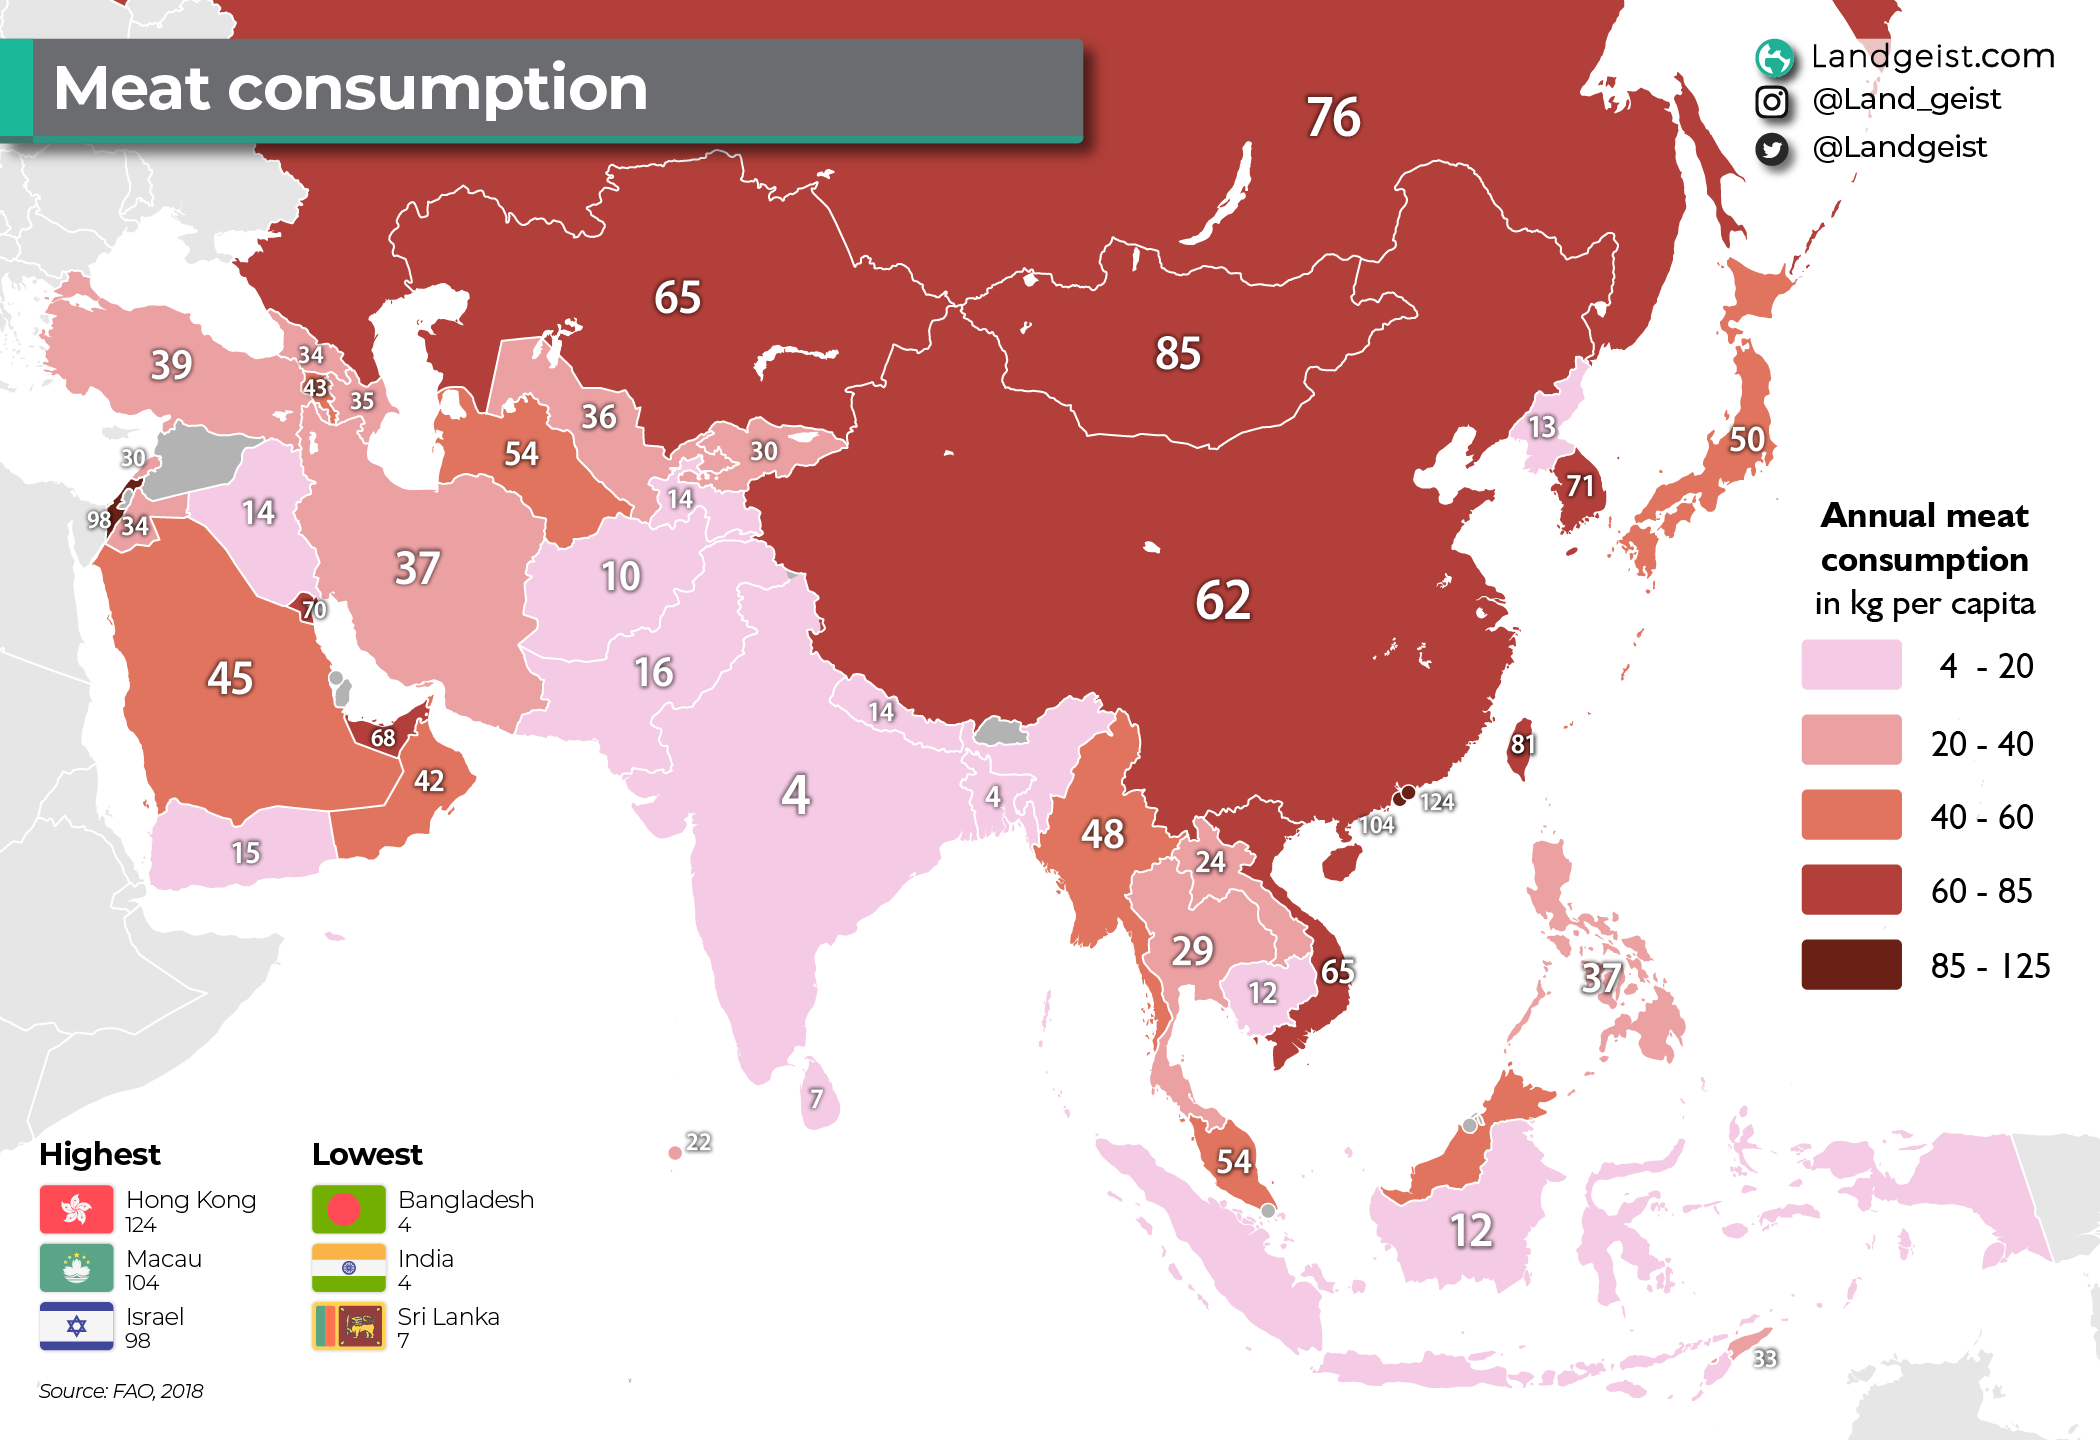 Map of the meat consumption in Asia.